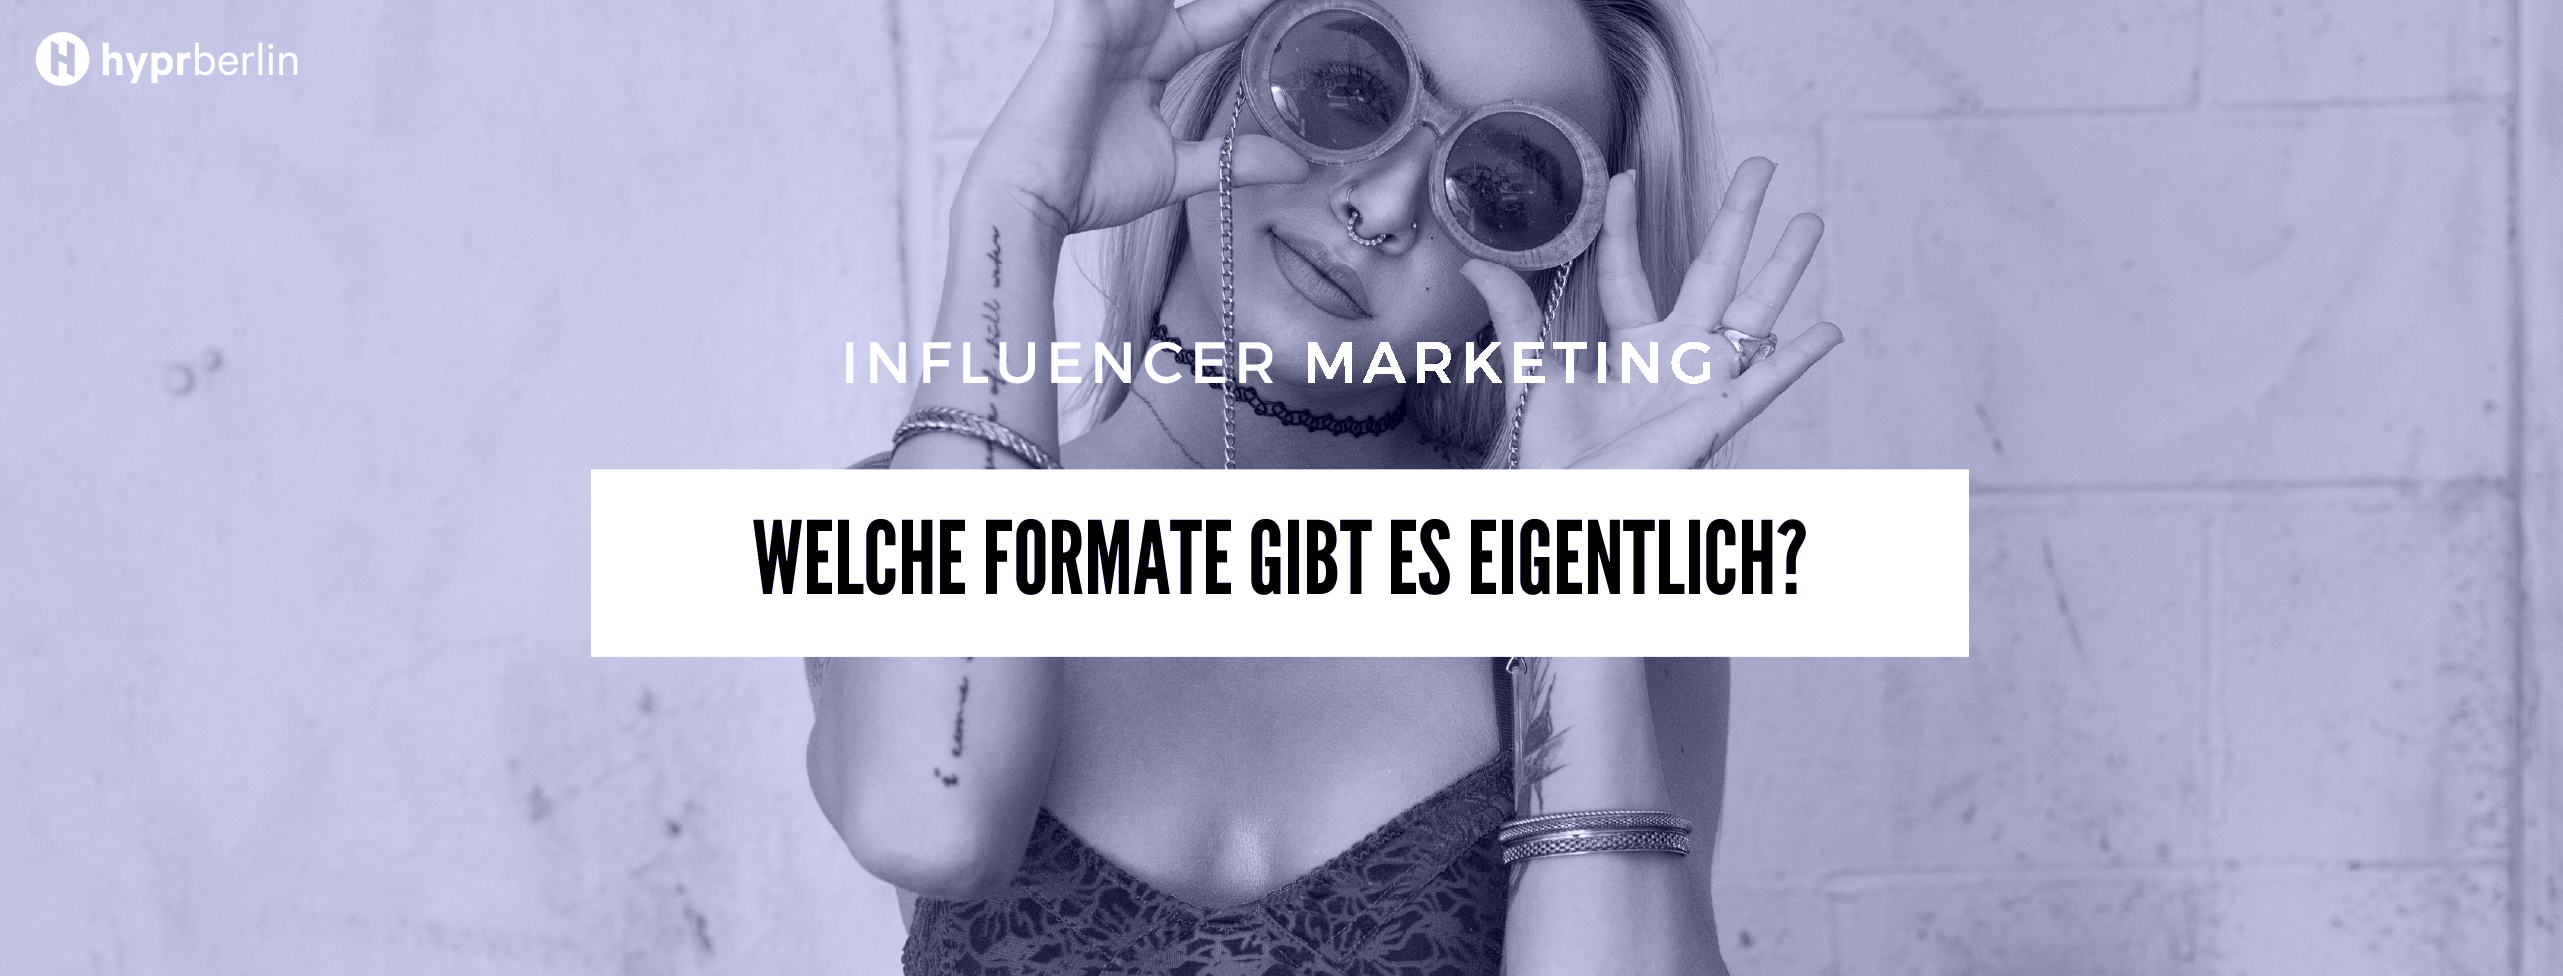 Influencer Marketing-2